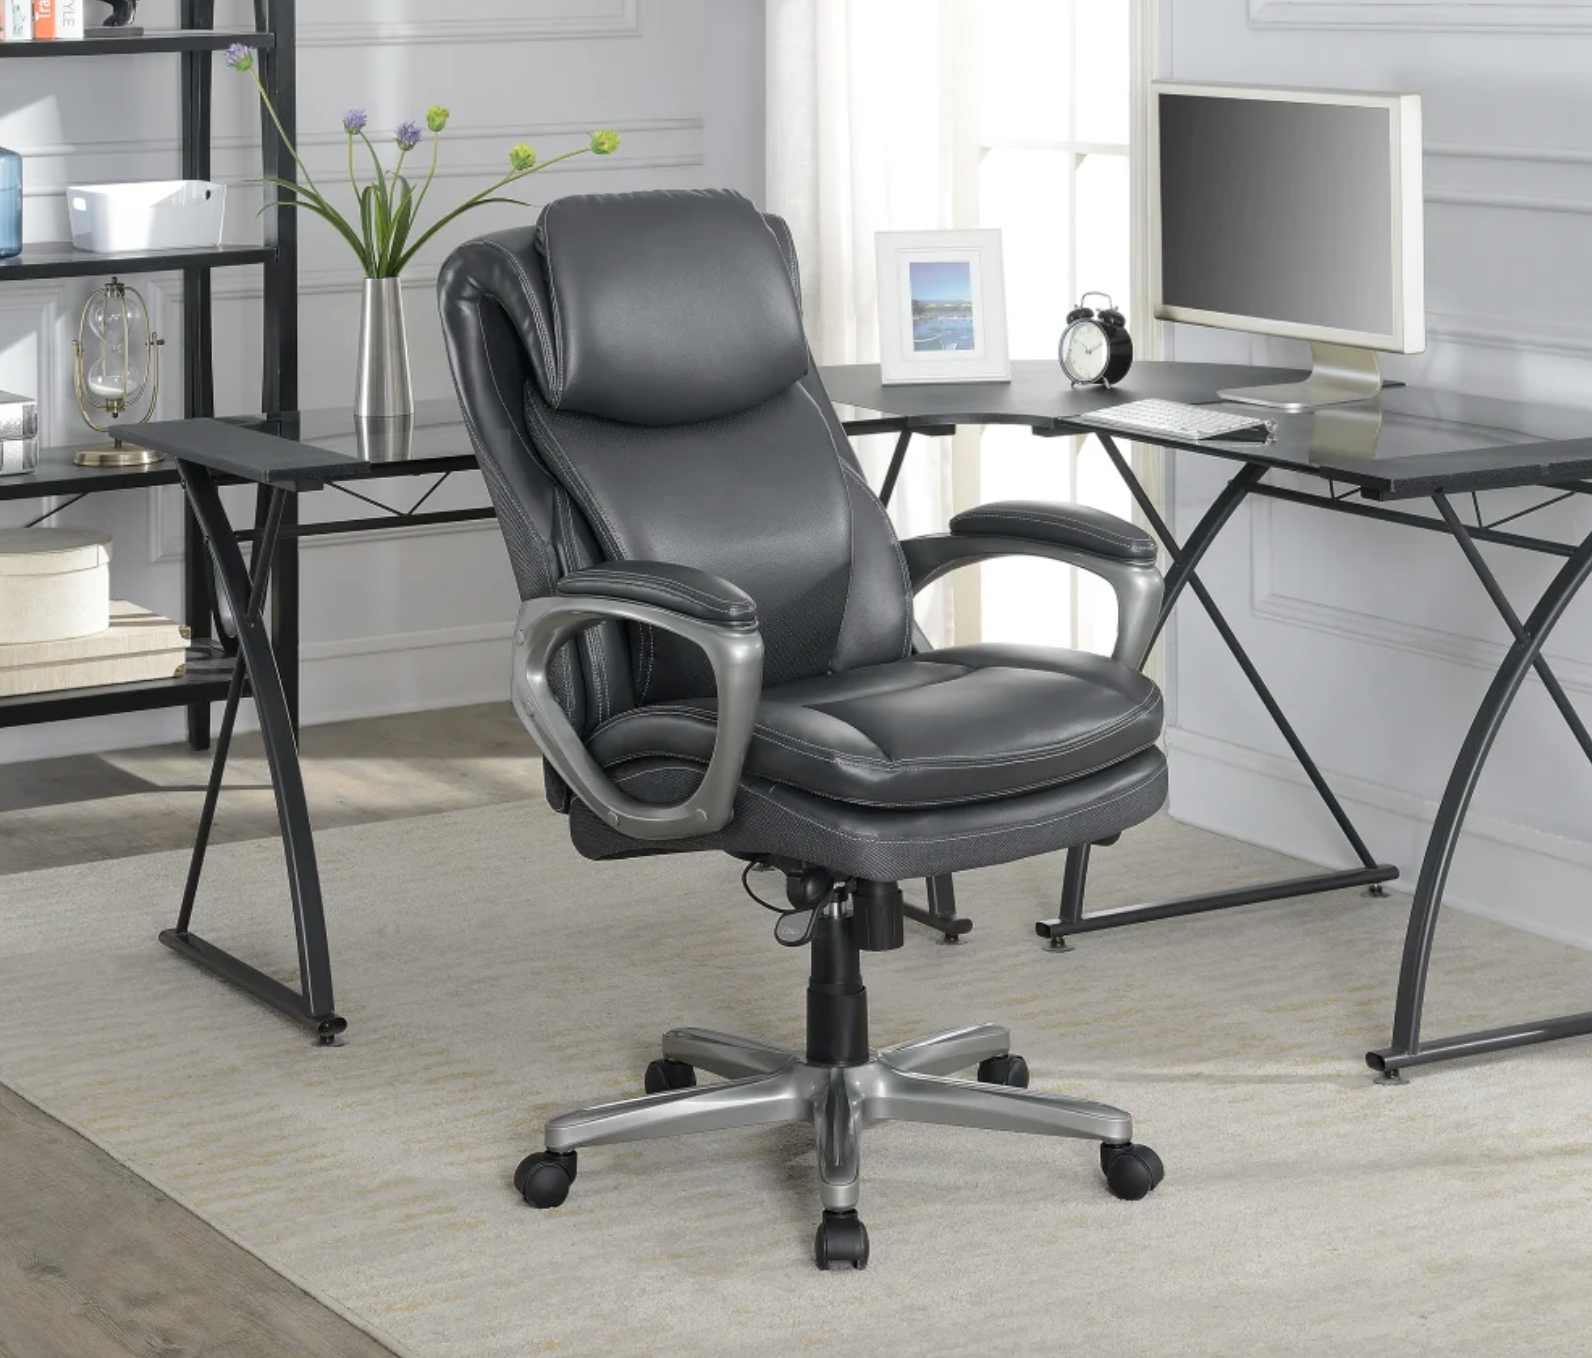 the black faux leather desk chair